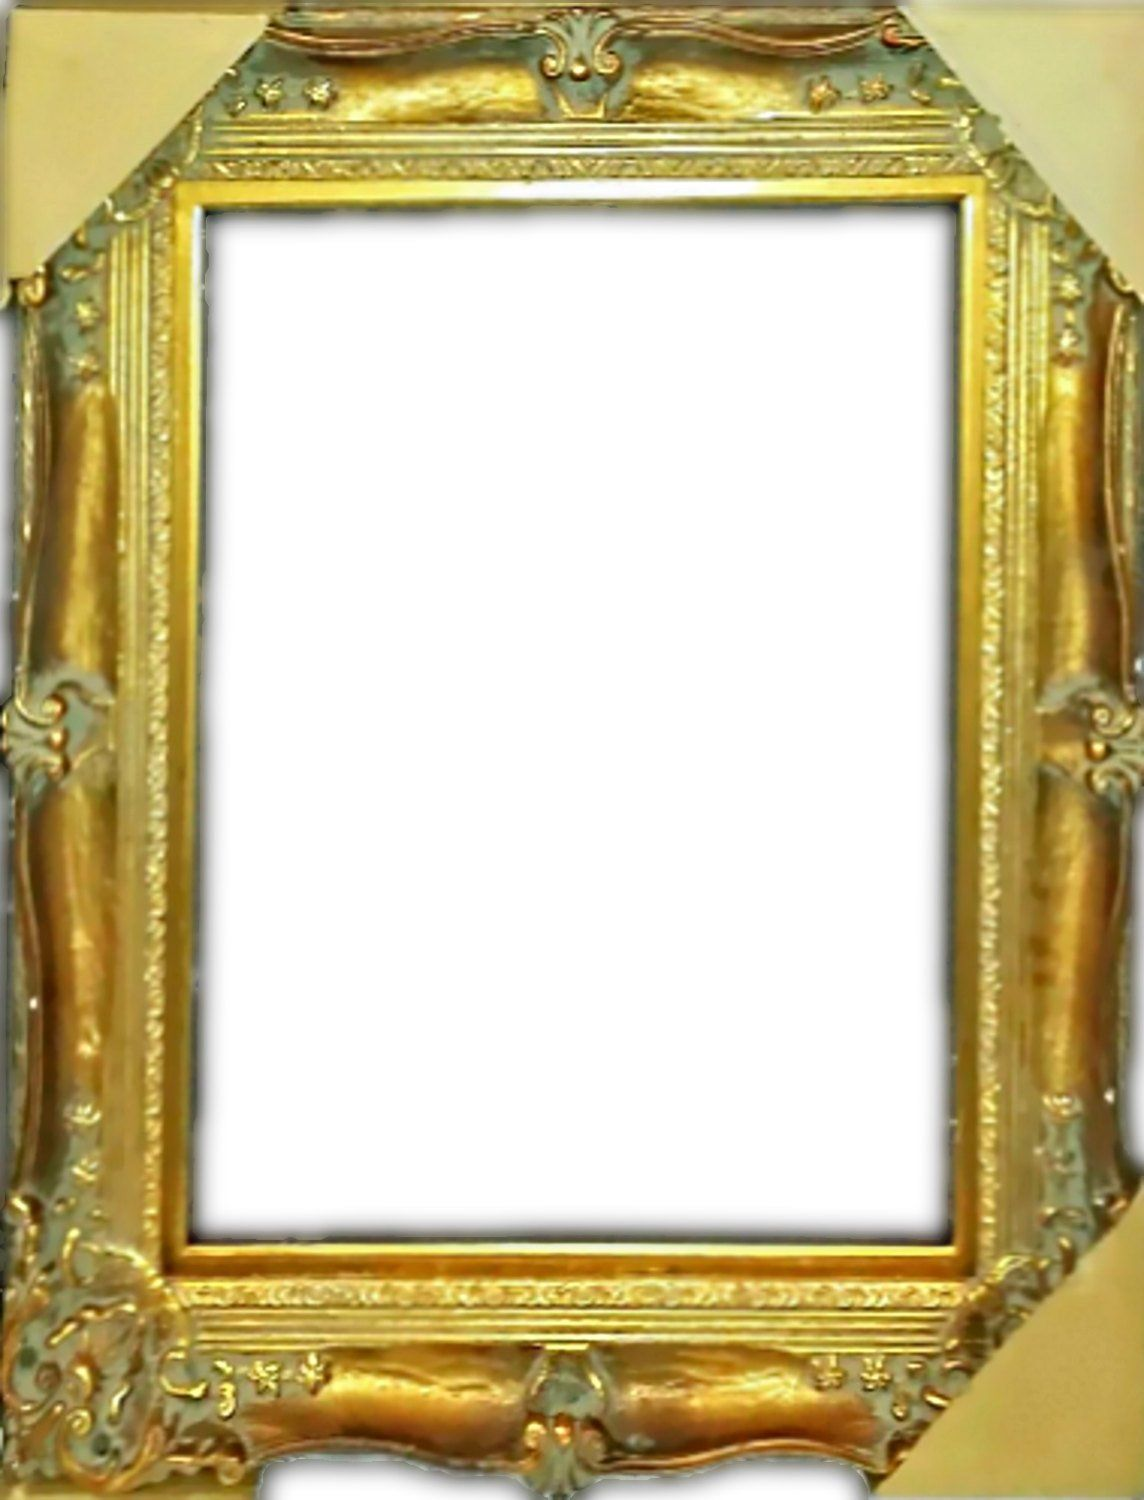 20th Century Gold Gilt Picture Frame 20x24   Picture Frame ...